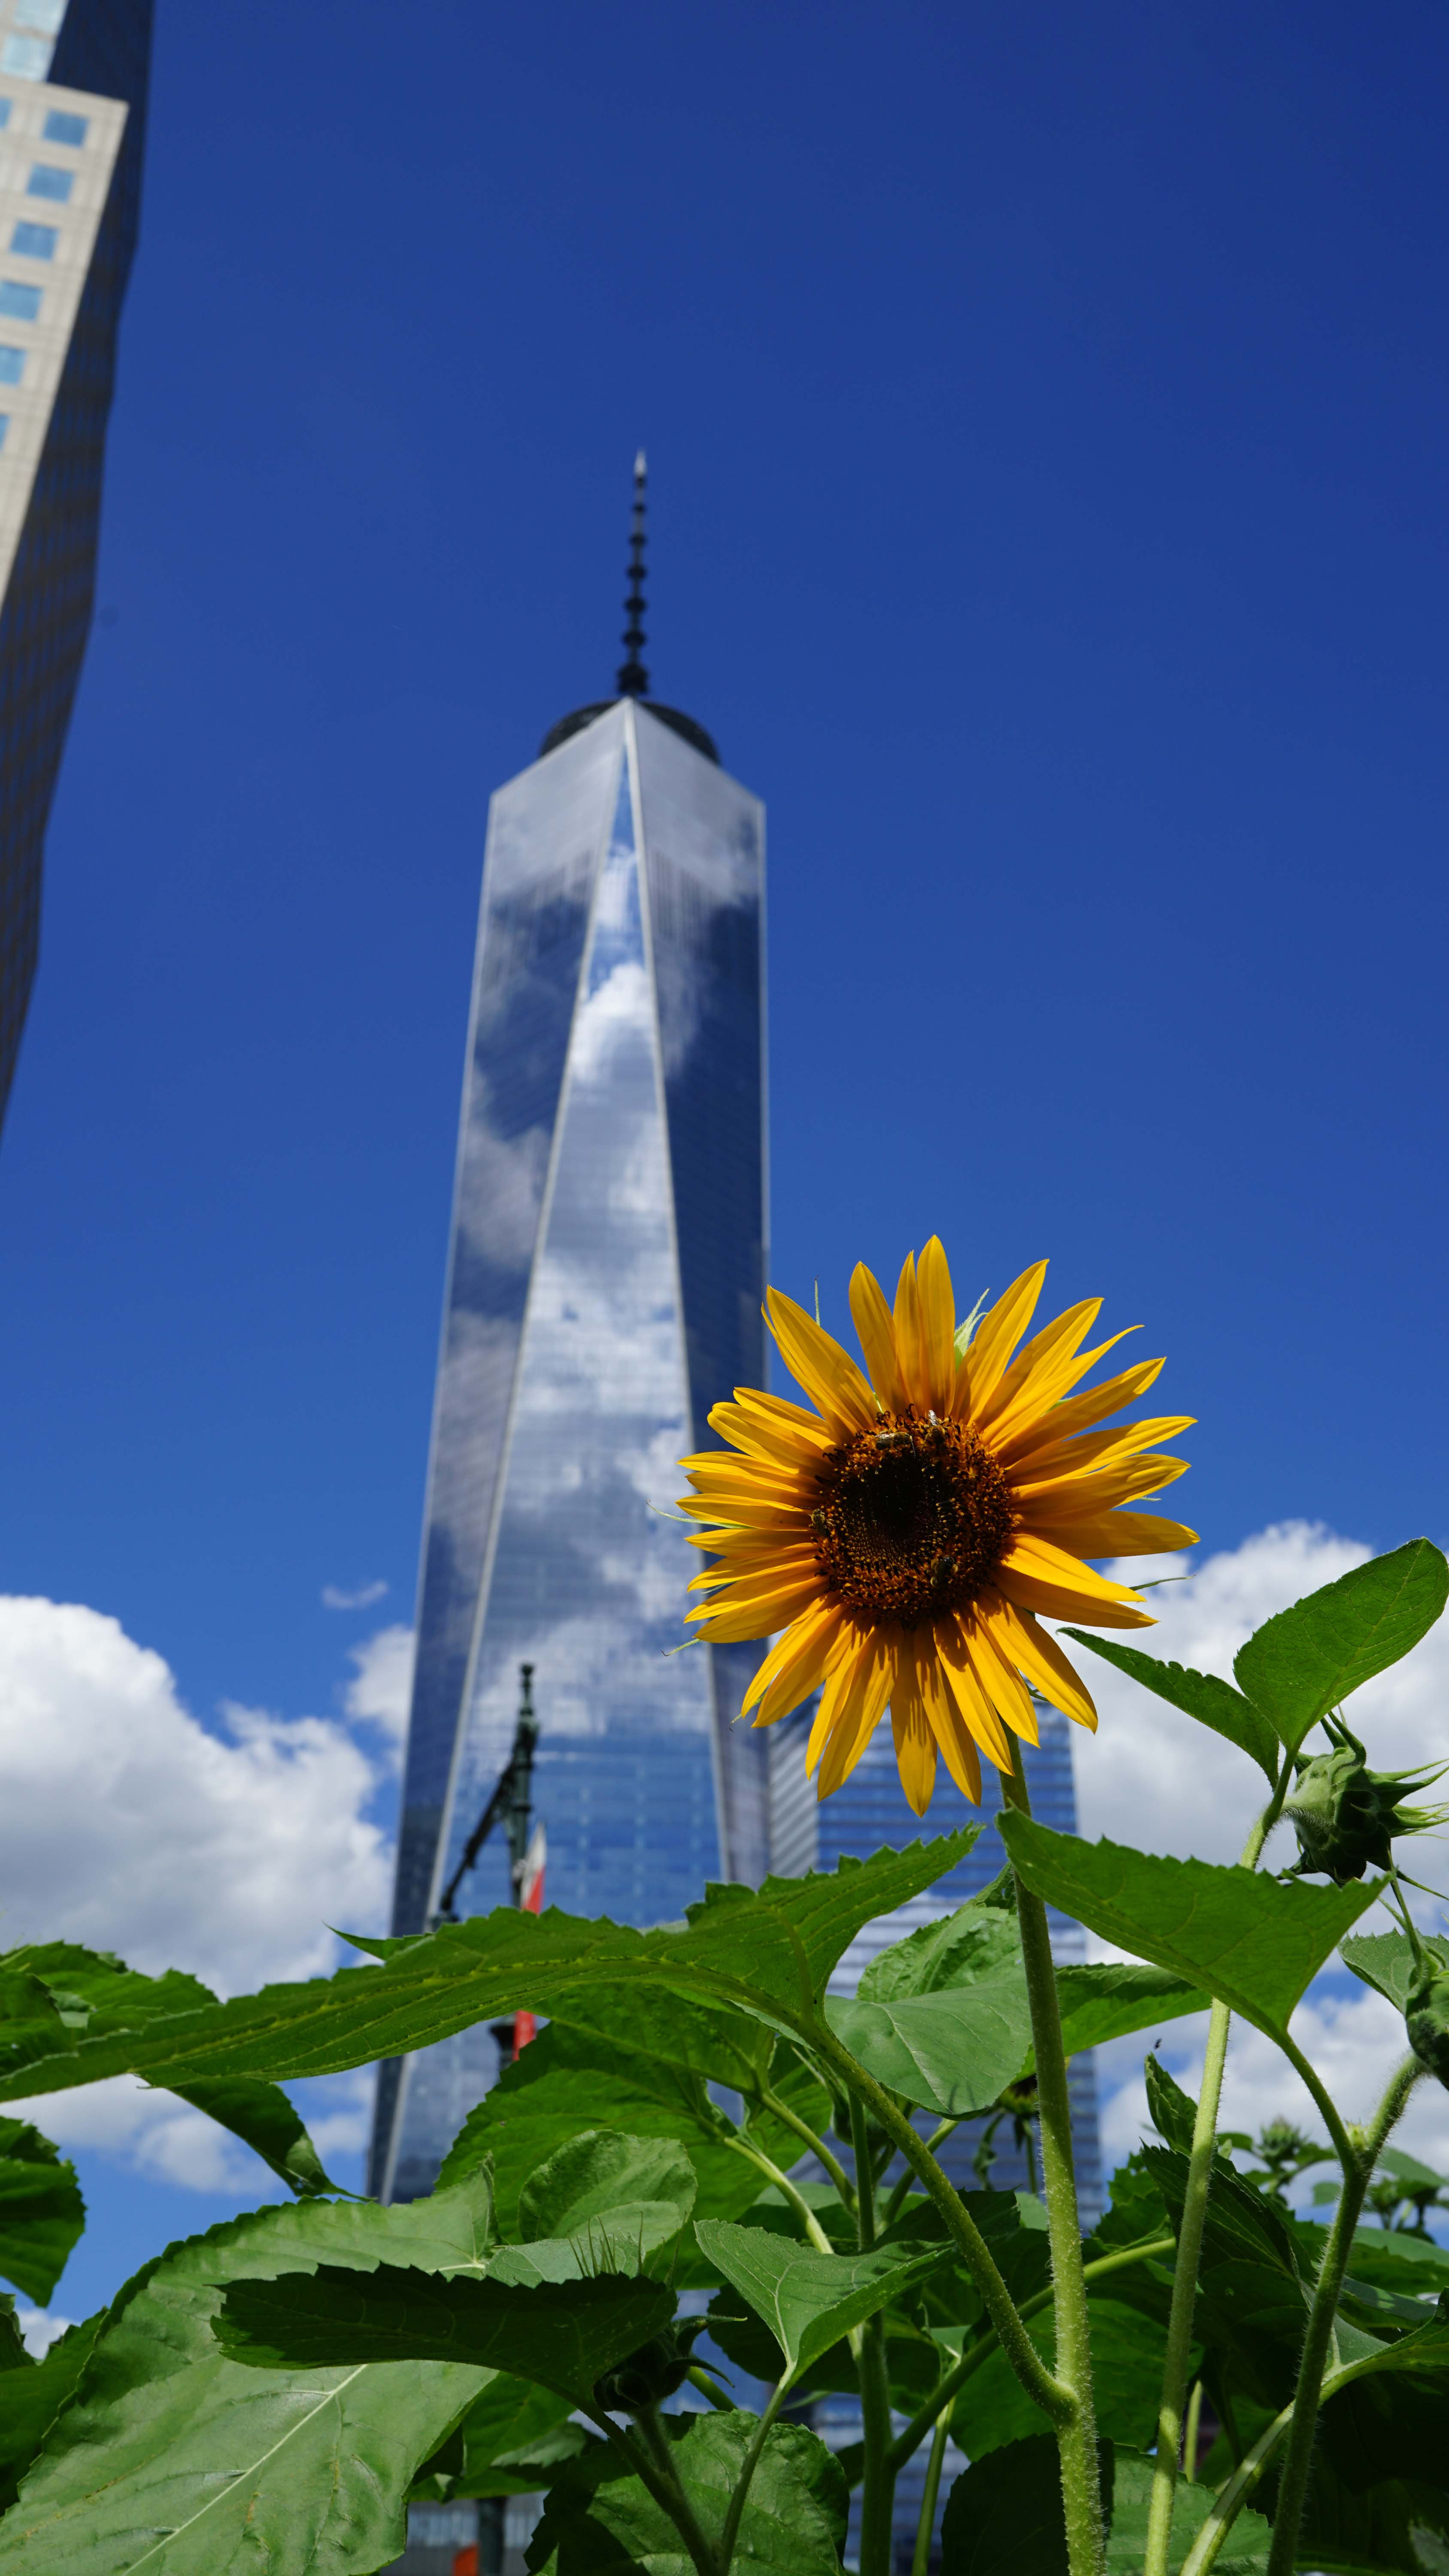 sunflowers and bees and 1 WTC 8-13-2015